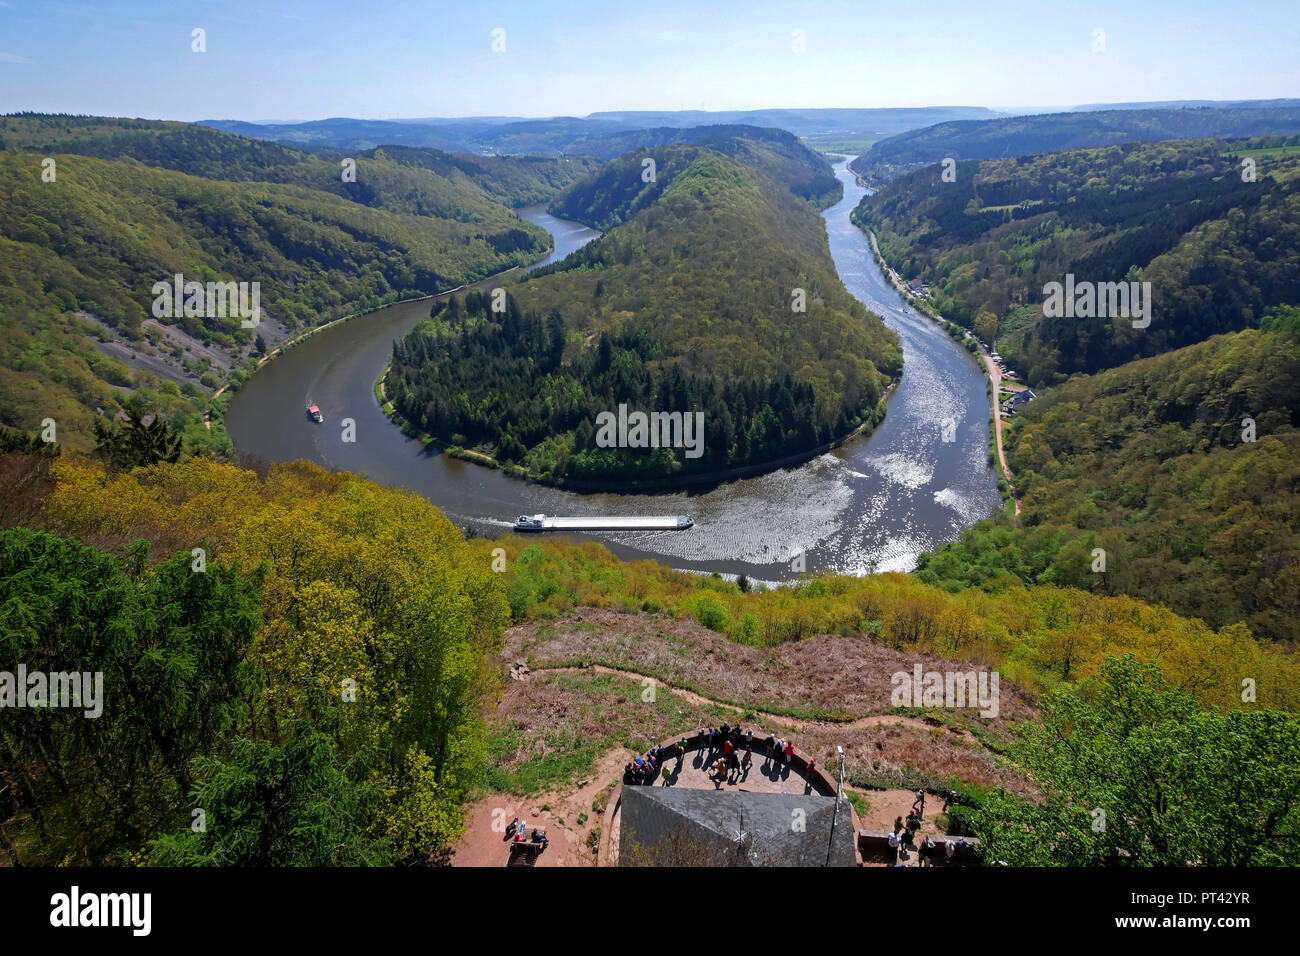 Viewpoint Cloef and big Saar loop, Mettlach-Orscholz, Saarland, Germany - Stock Image